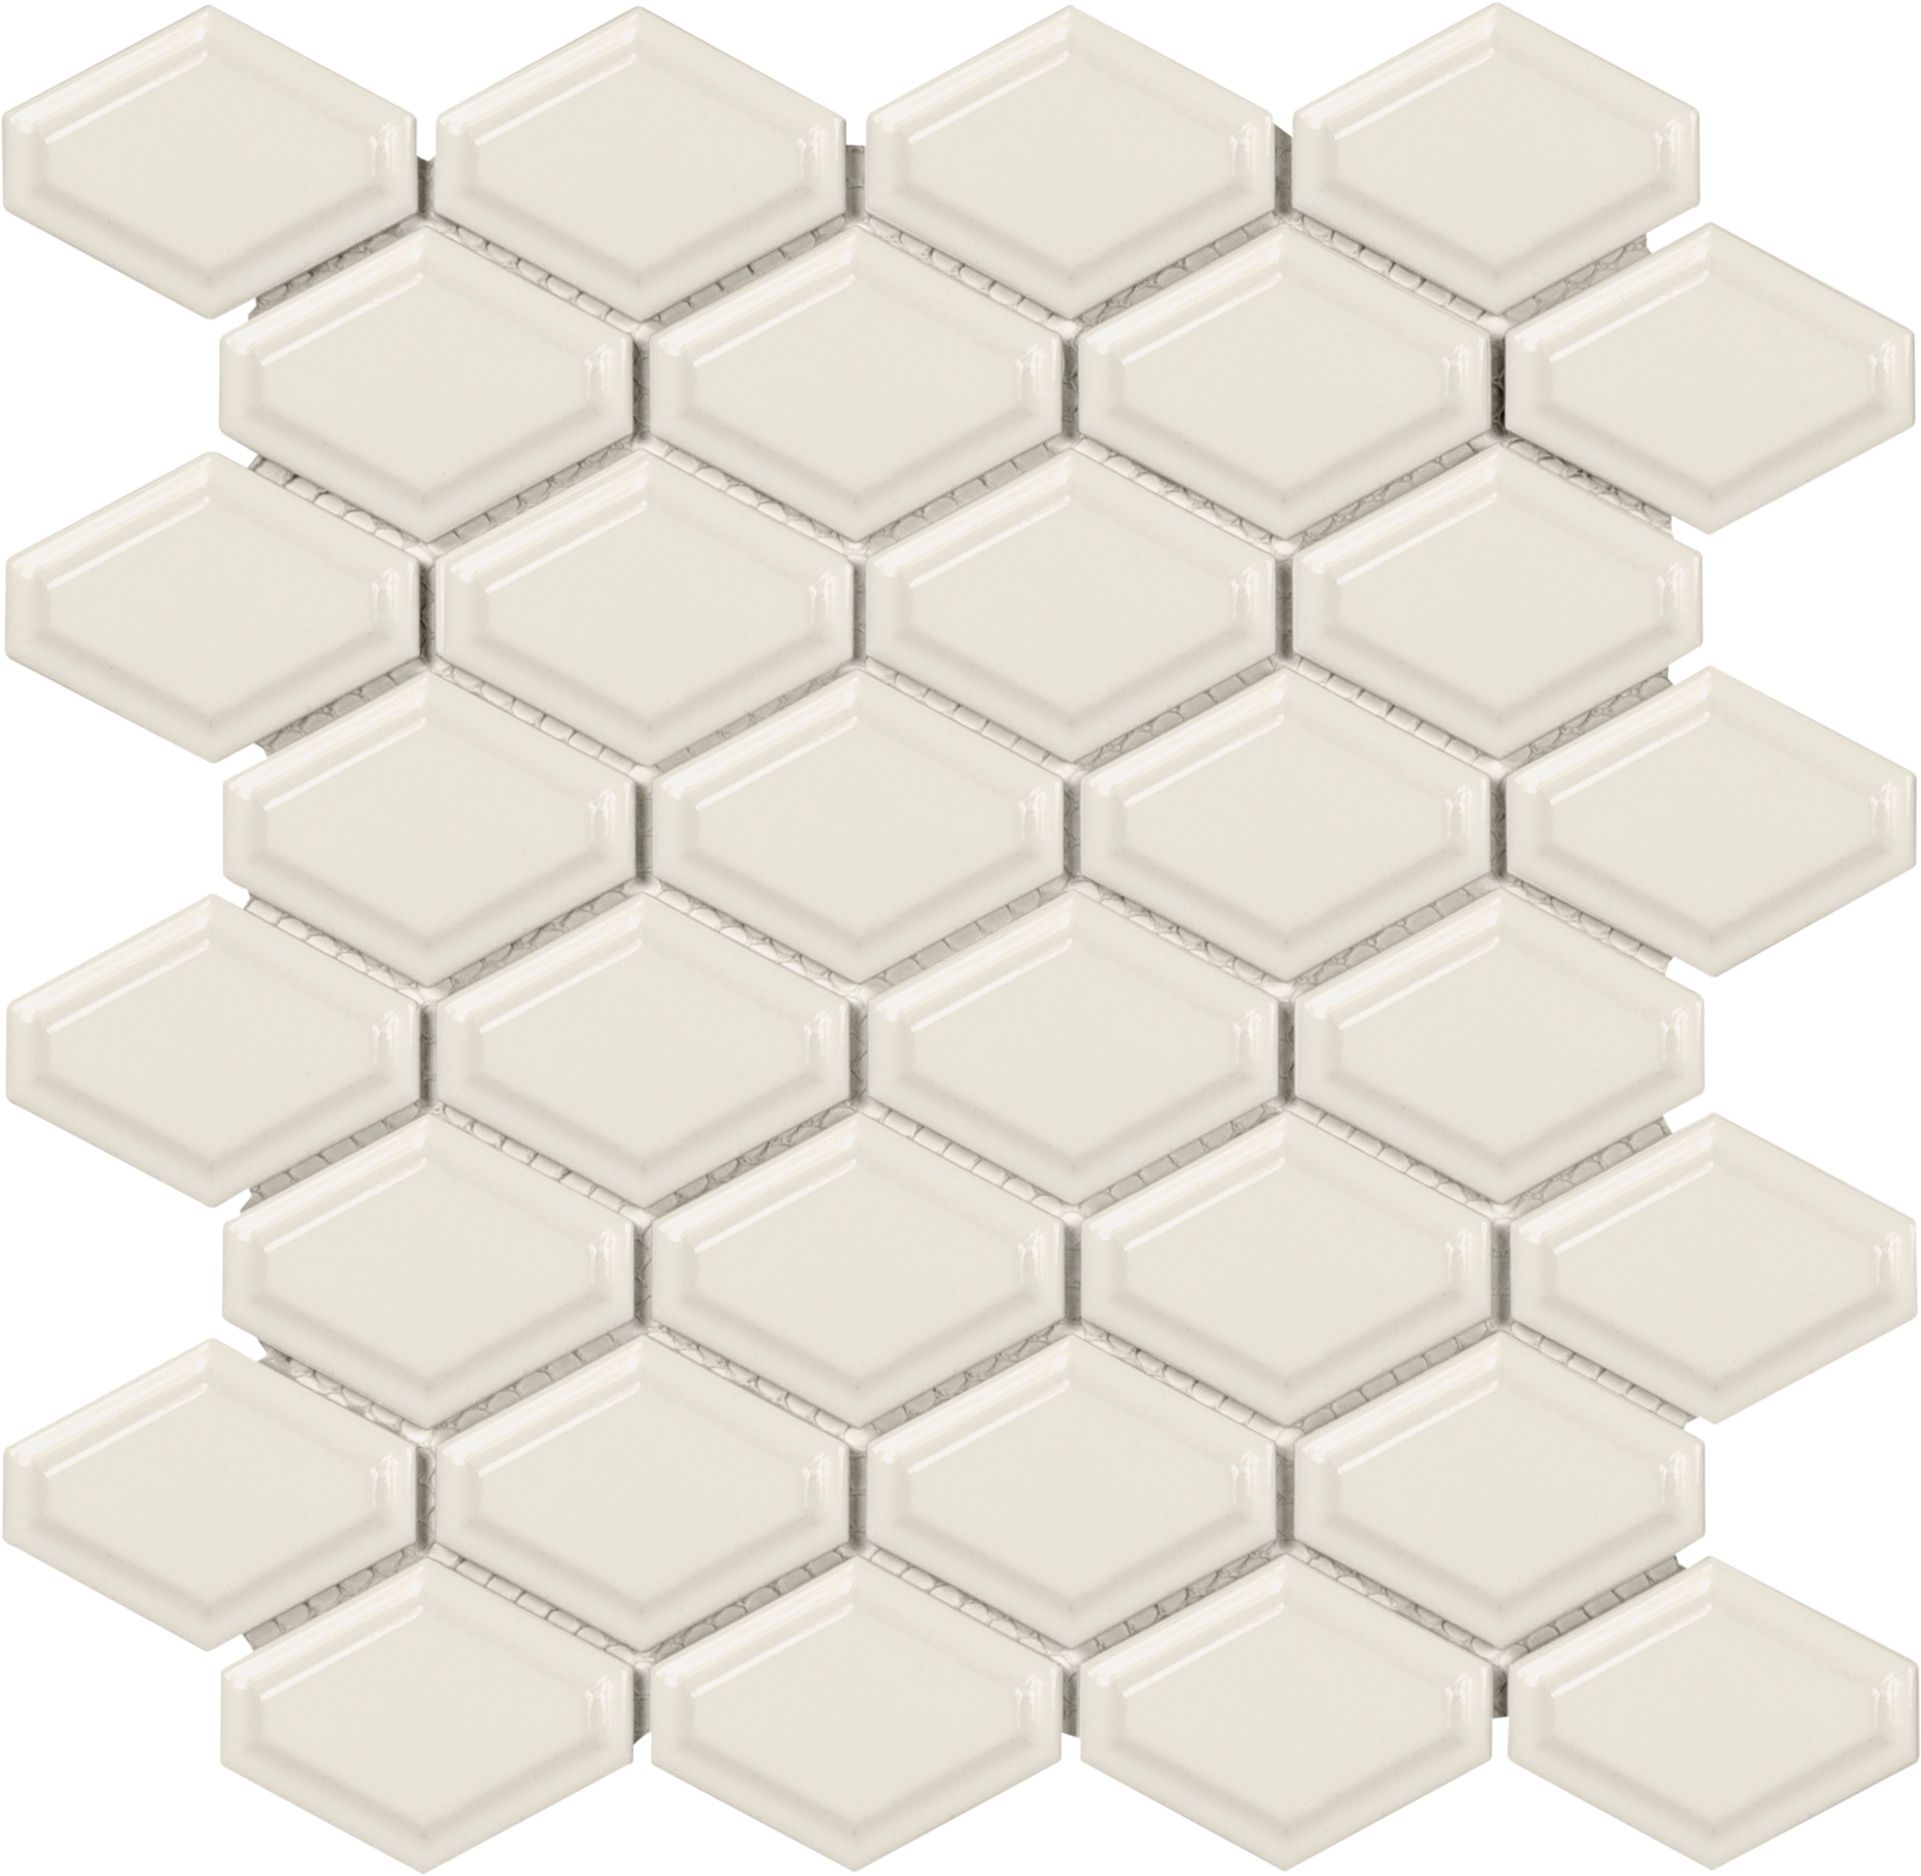 Related image crown forest pinterest ceramic wall tiles wall arizona tile s series mosaics are glazed porcelain mosaics available in classic neutral colors as well as several shapes and sizes dailygadgetfo Image collections